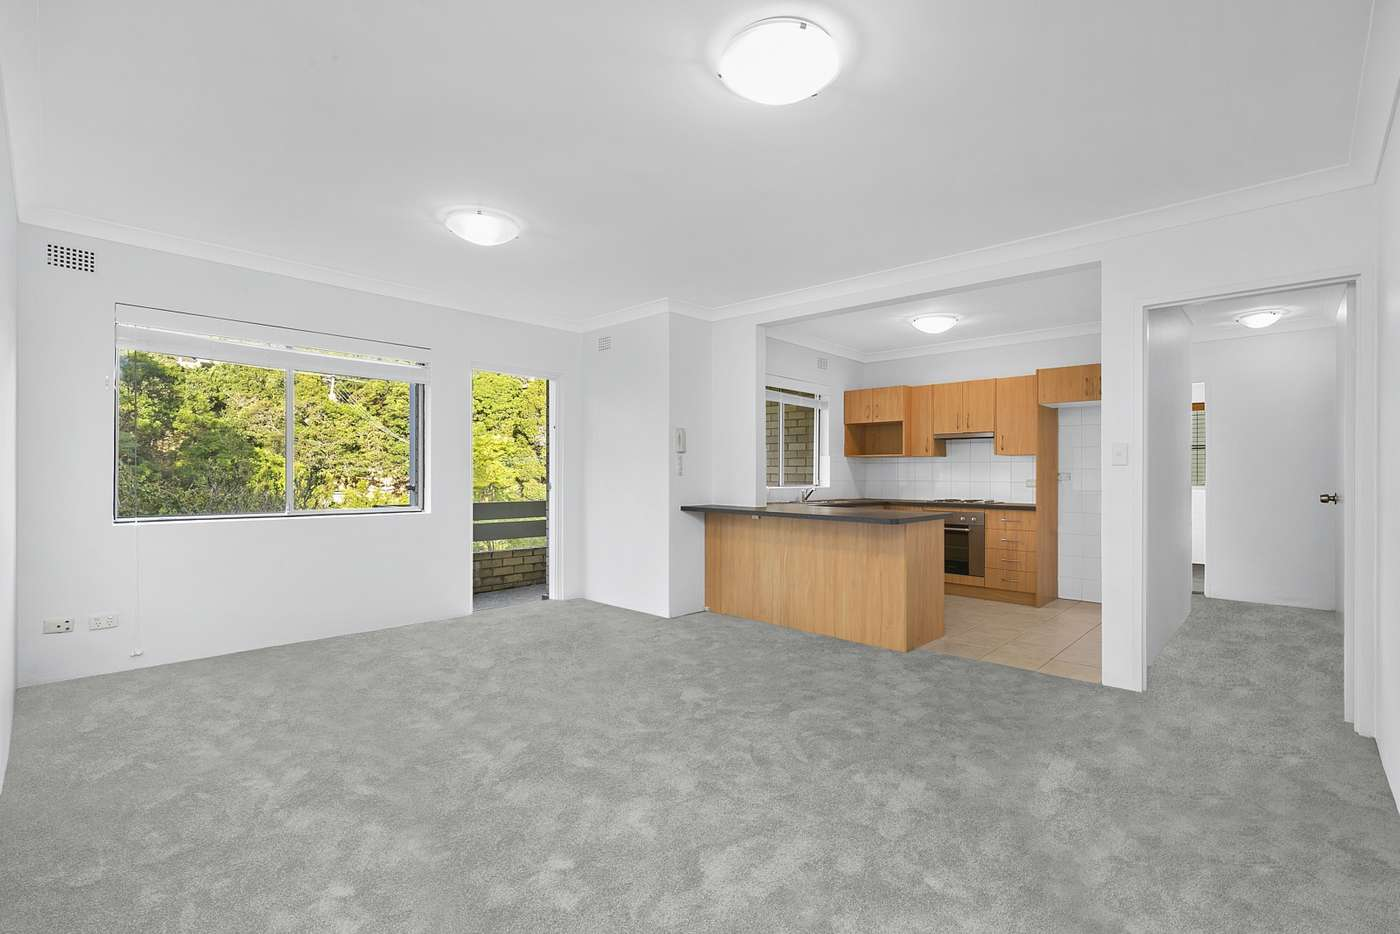 Main view of Homely apartment listing, 11/30 Eaton Street, Neutral Bay NSW 2089